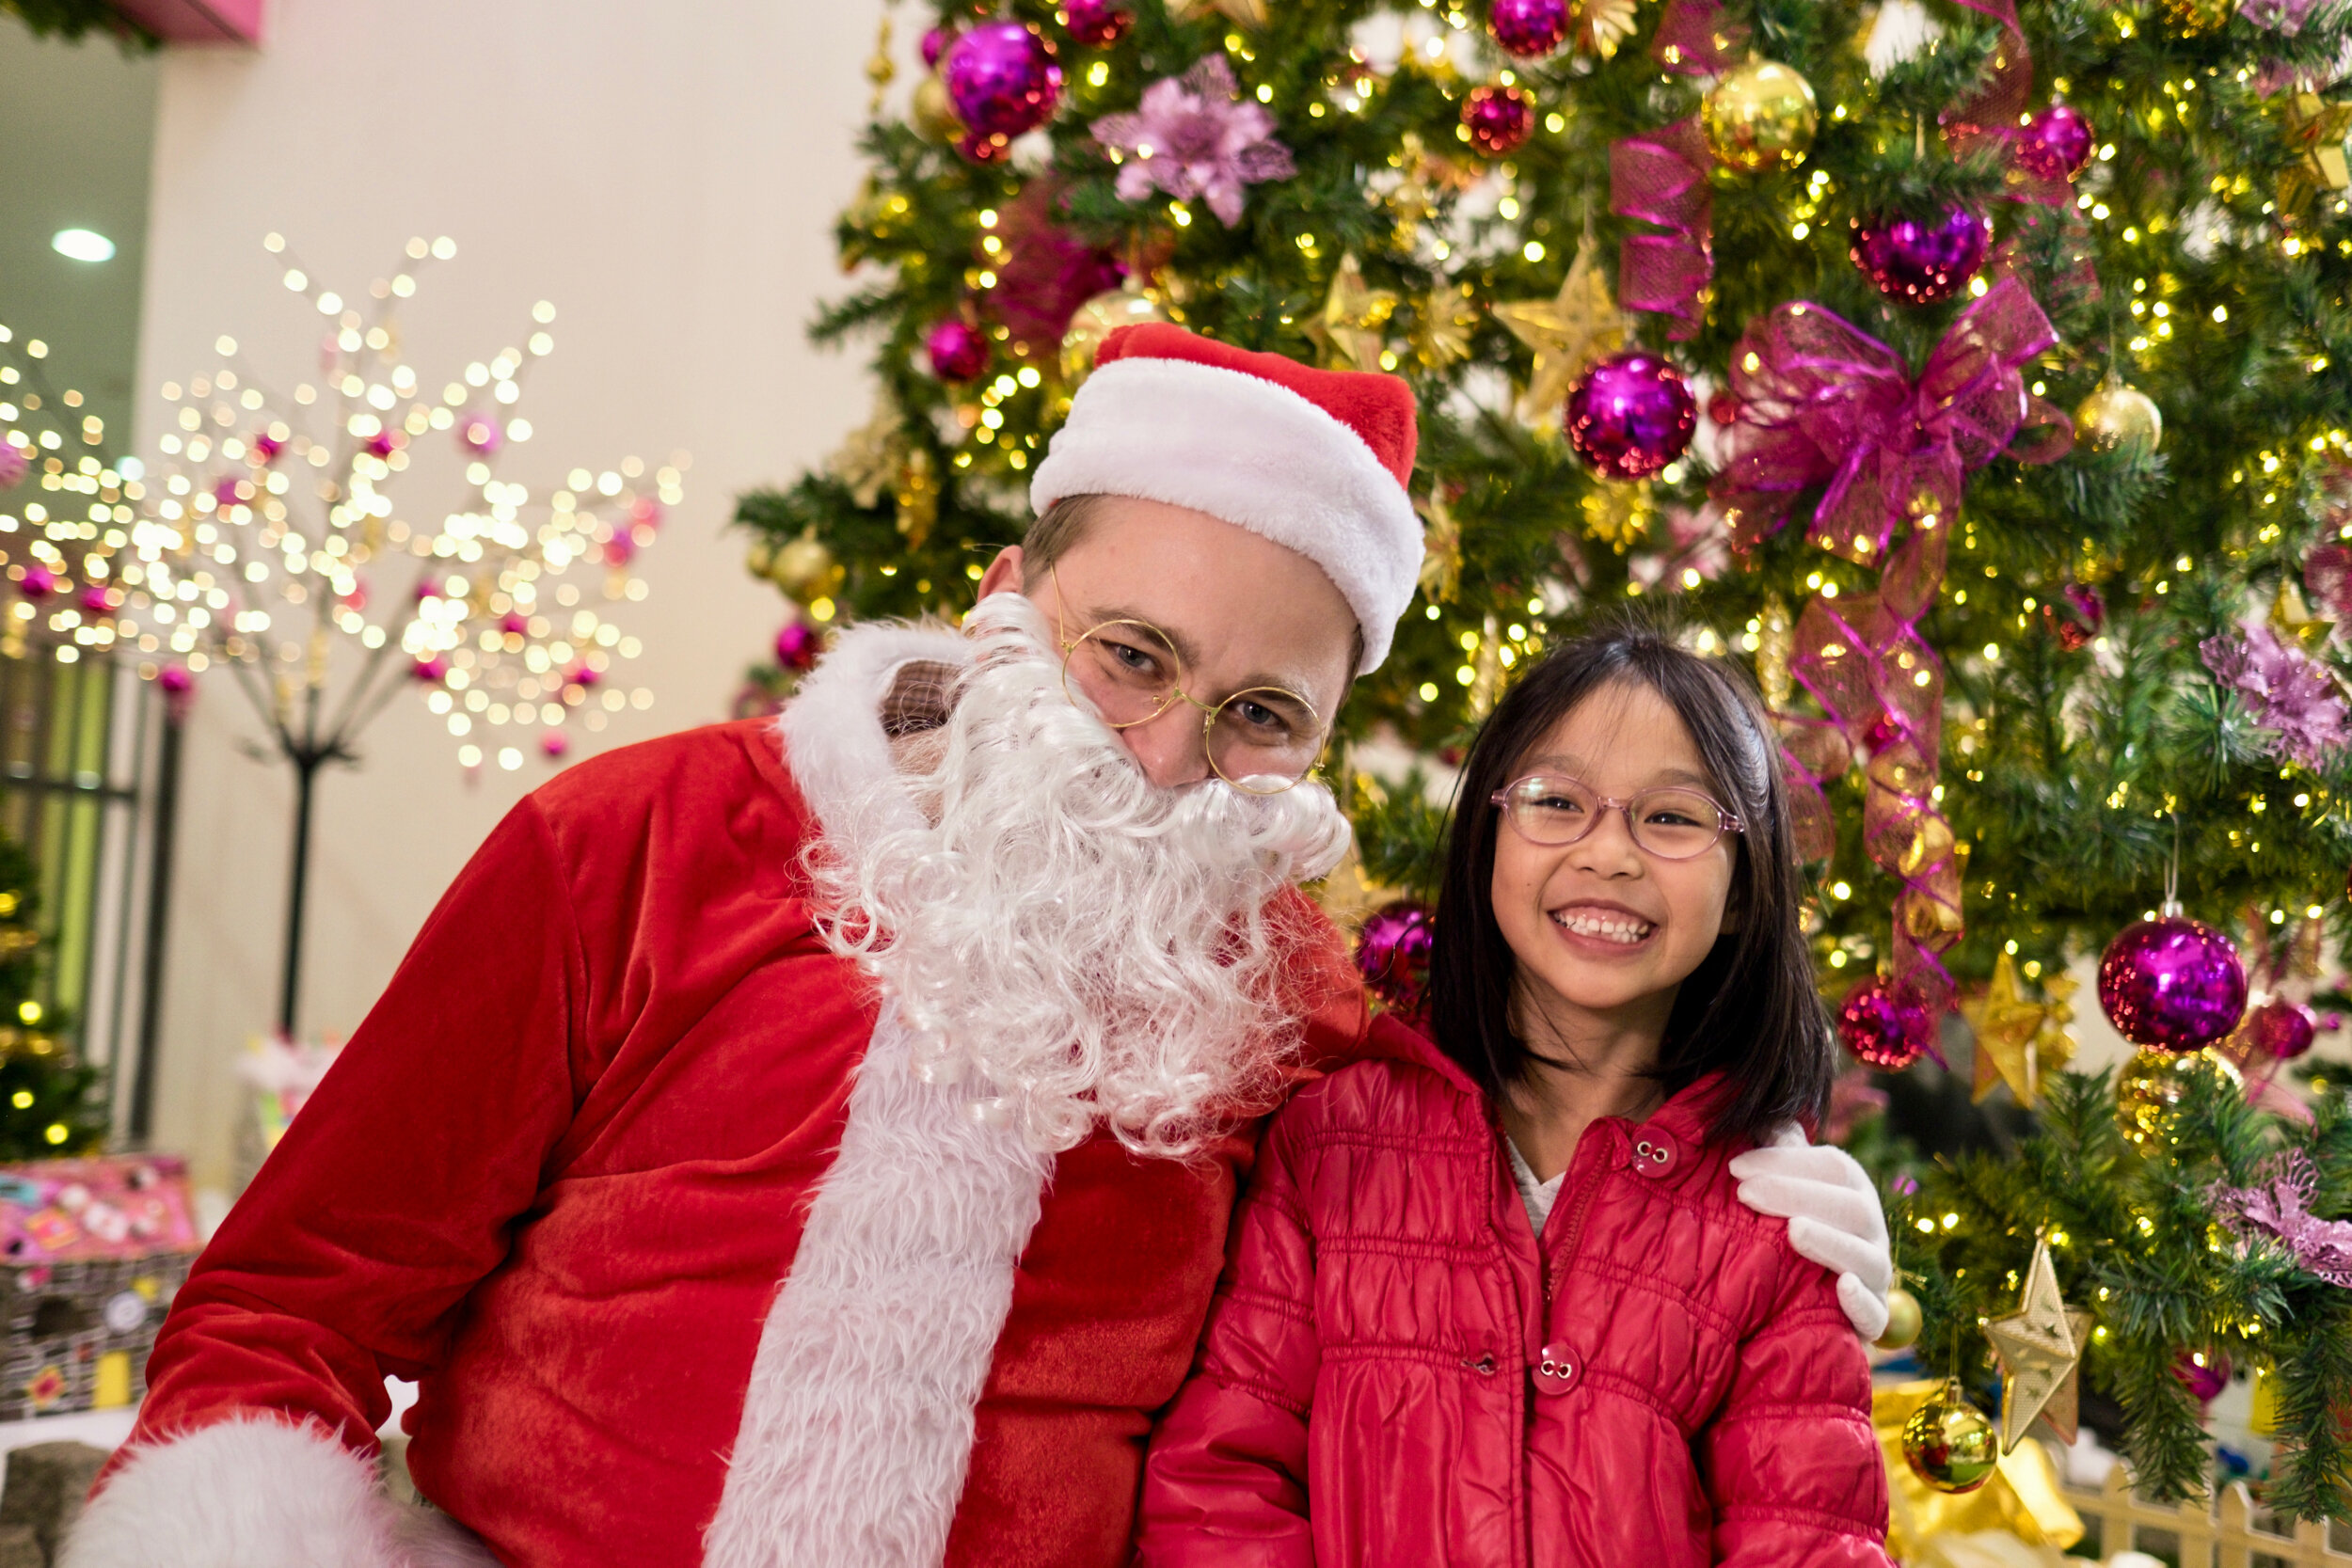 Photoshoot with Santa Clause-828.jpg